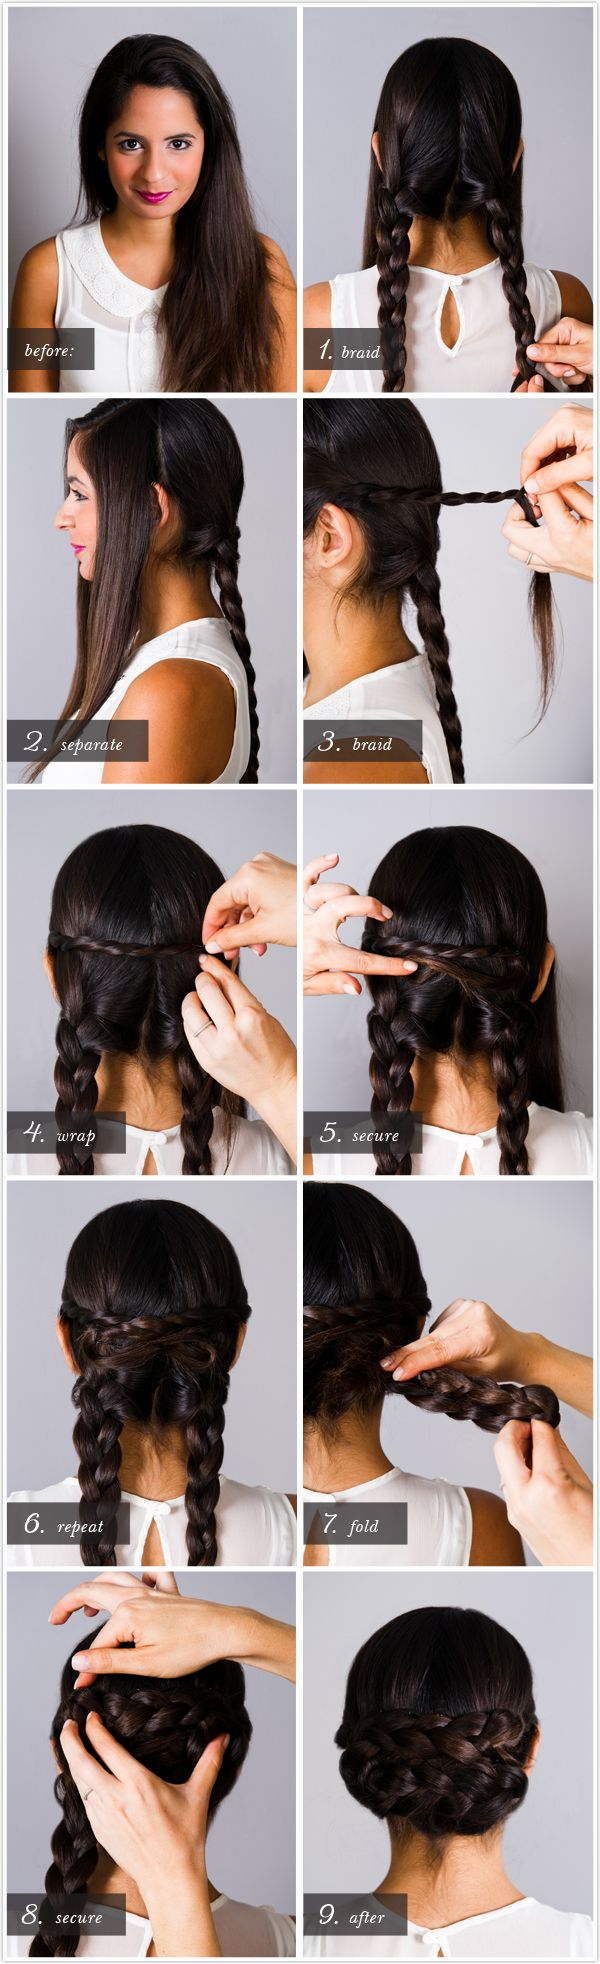 Braided bun: Hair Ideas, Hairstyles, Hair Tutorials, Braids Updo, Makeup, Long Hair, Longhair, Hair Style, Braids Buns